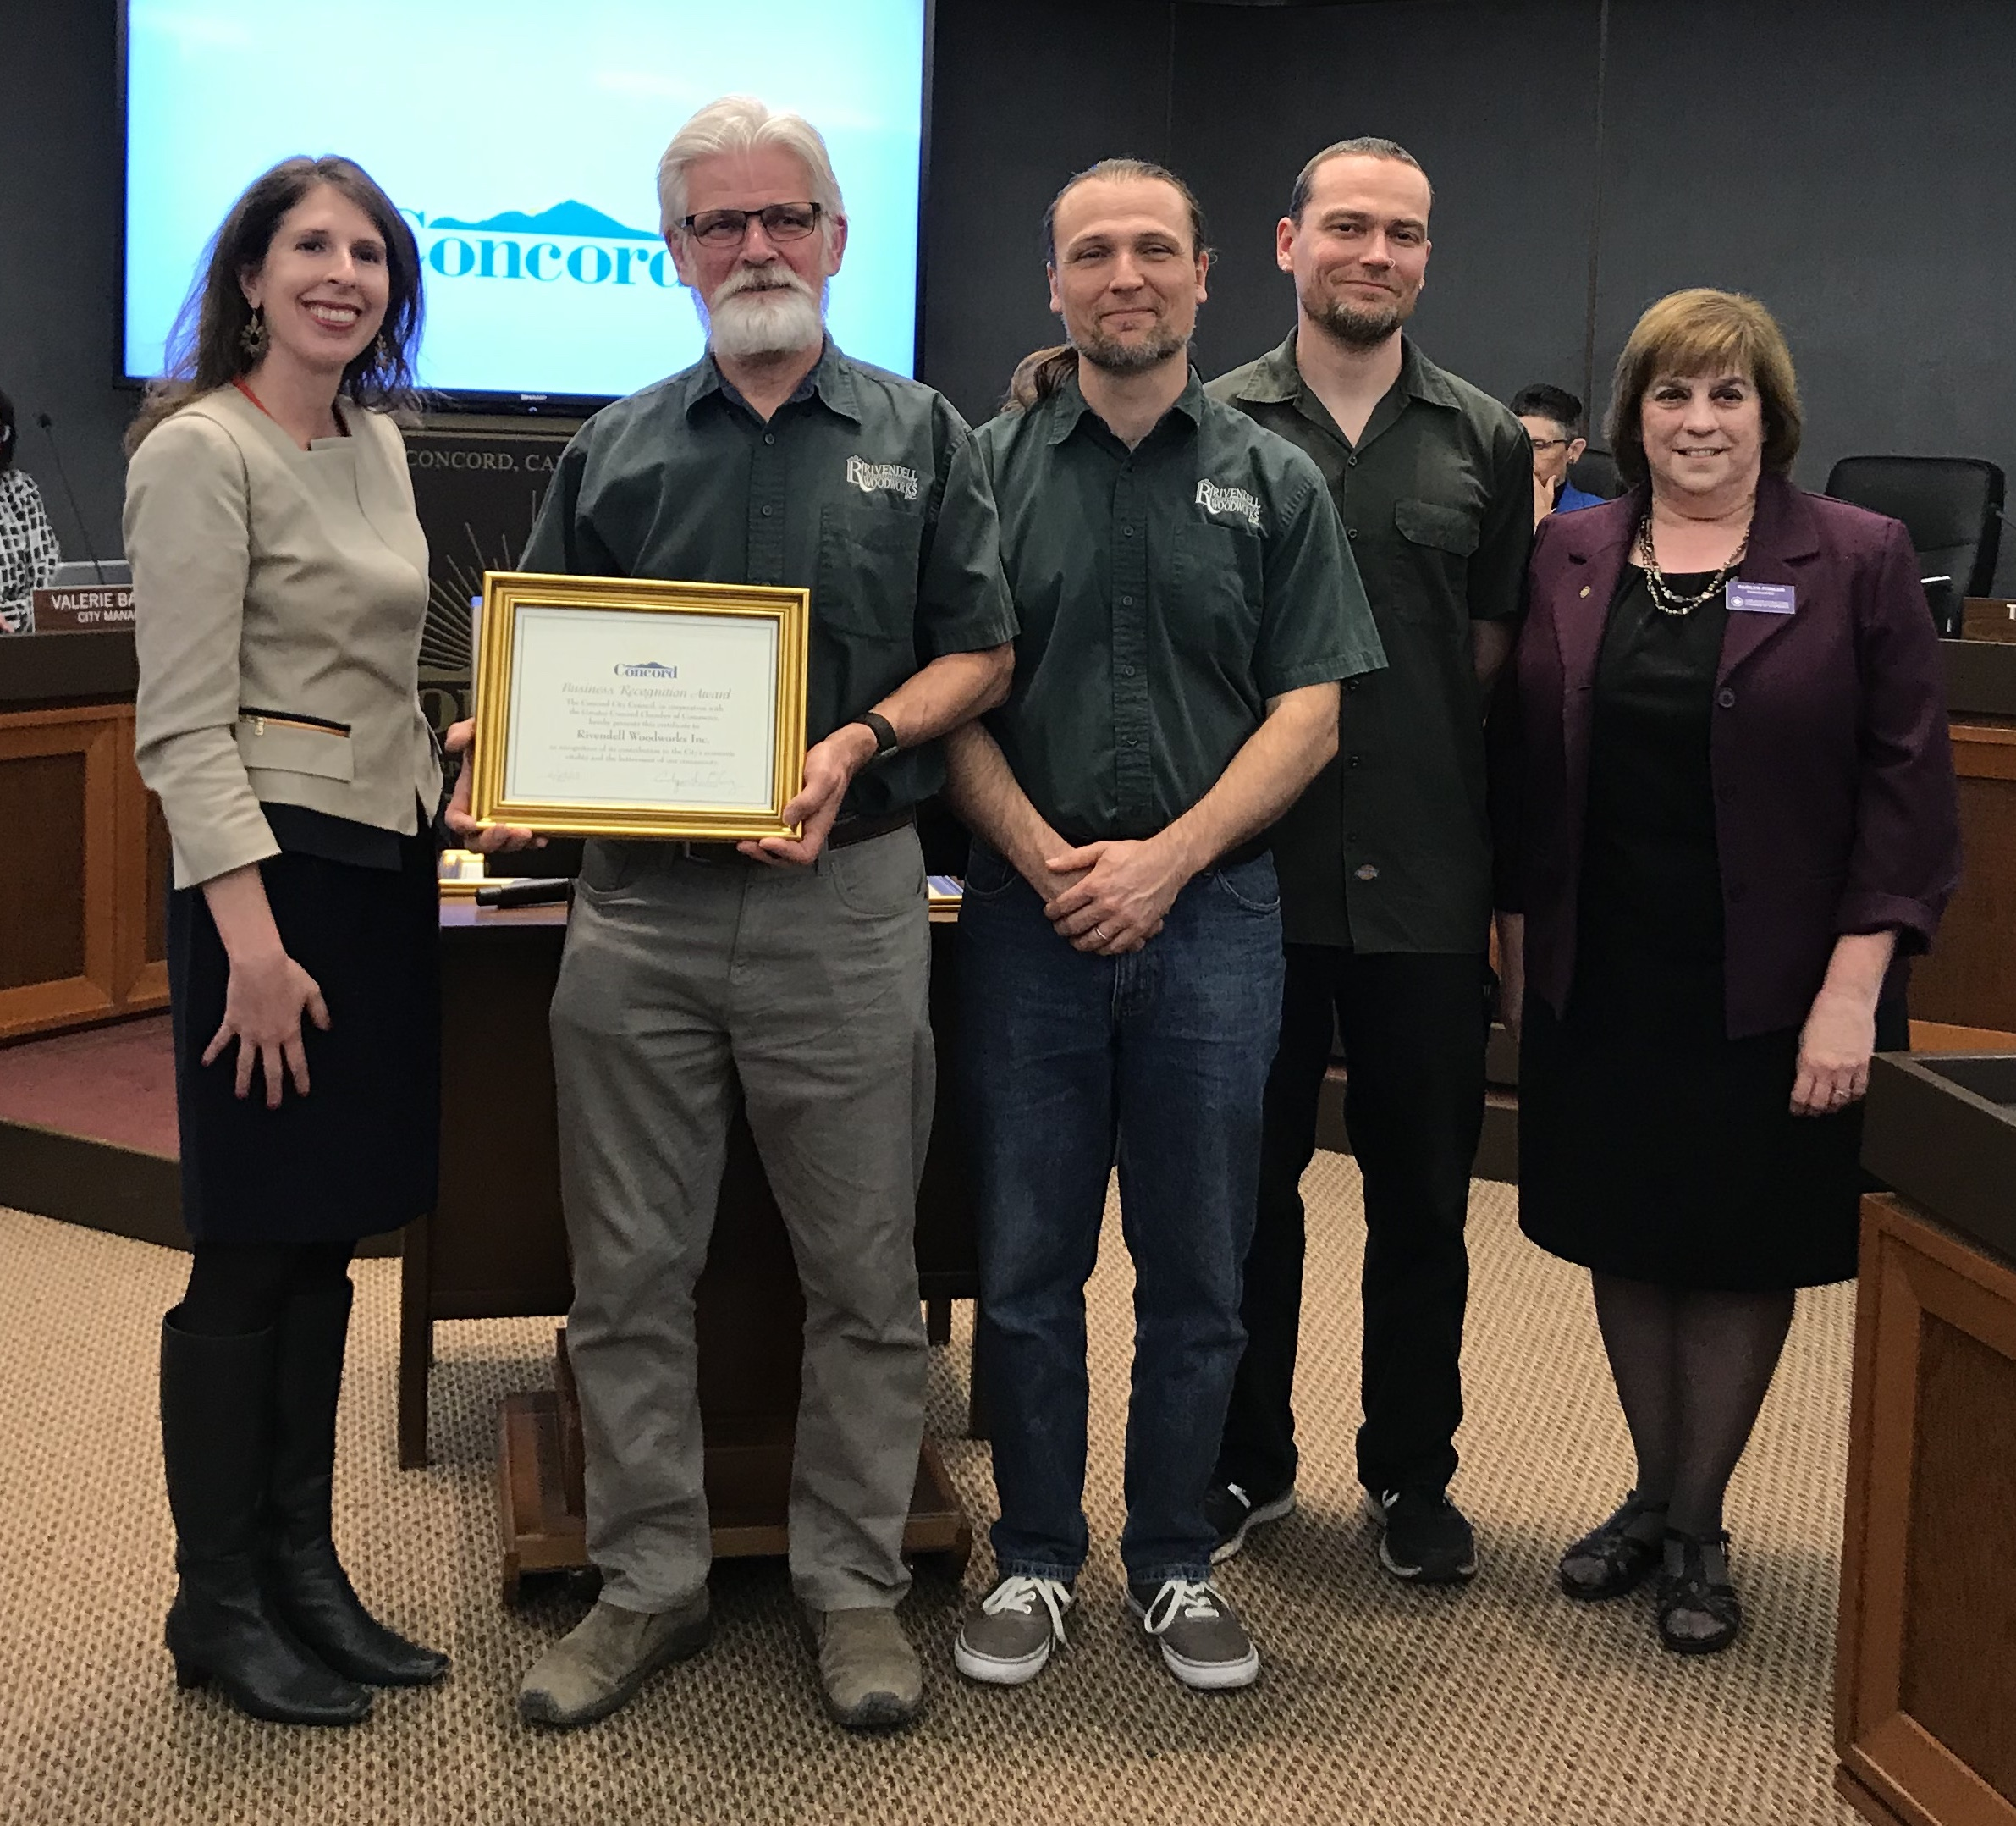 City of Concord Business Recognition Award